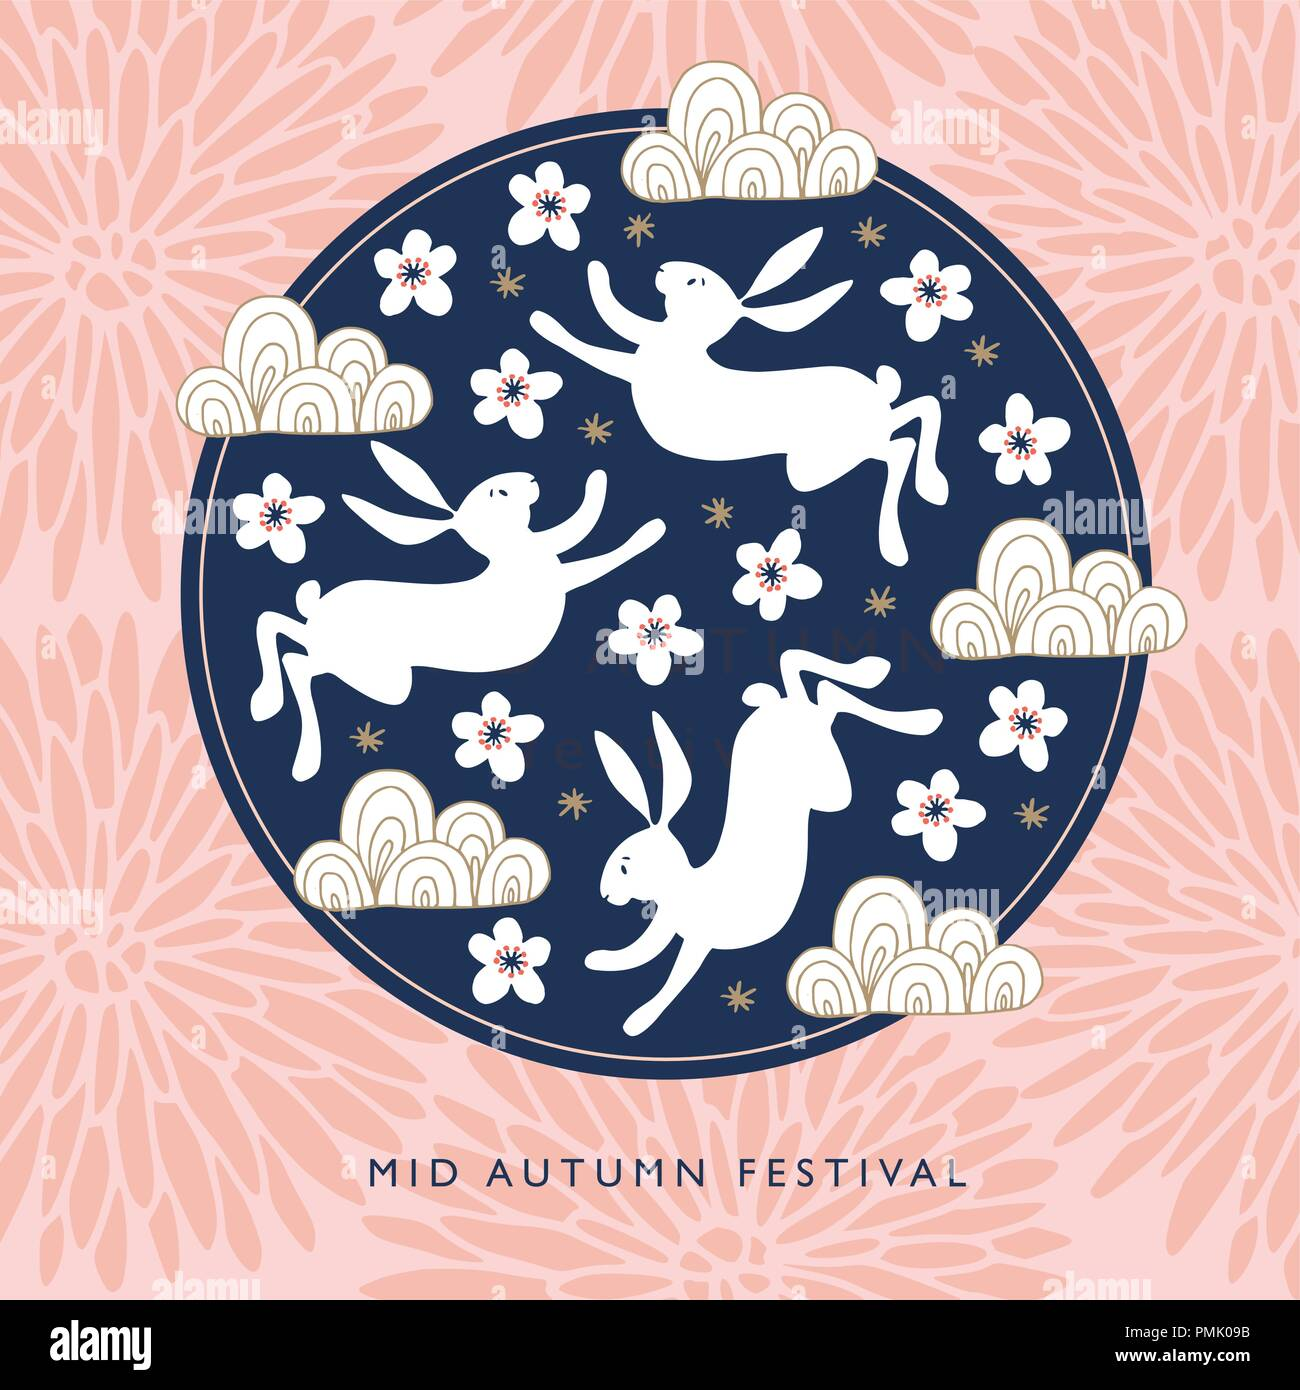 Mid autumn festival greeting card invitation with jade rabbits mid autumn festival greeting card invitation with jade rabbits moon silhouette pink chrysanthemum flowers cherry blossoms and chinese clouds m4hsunfo